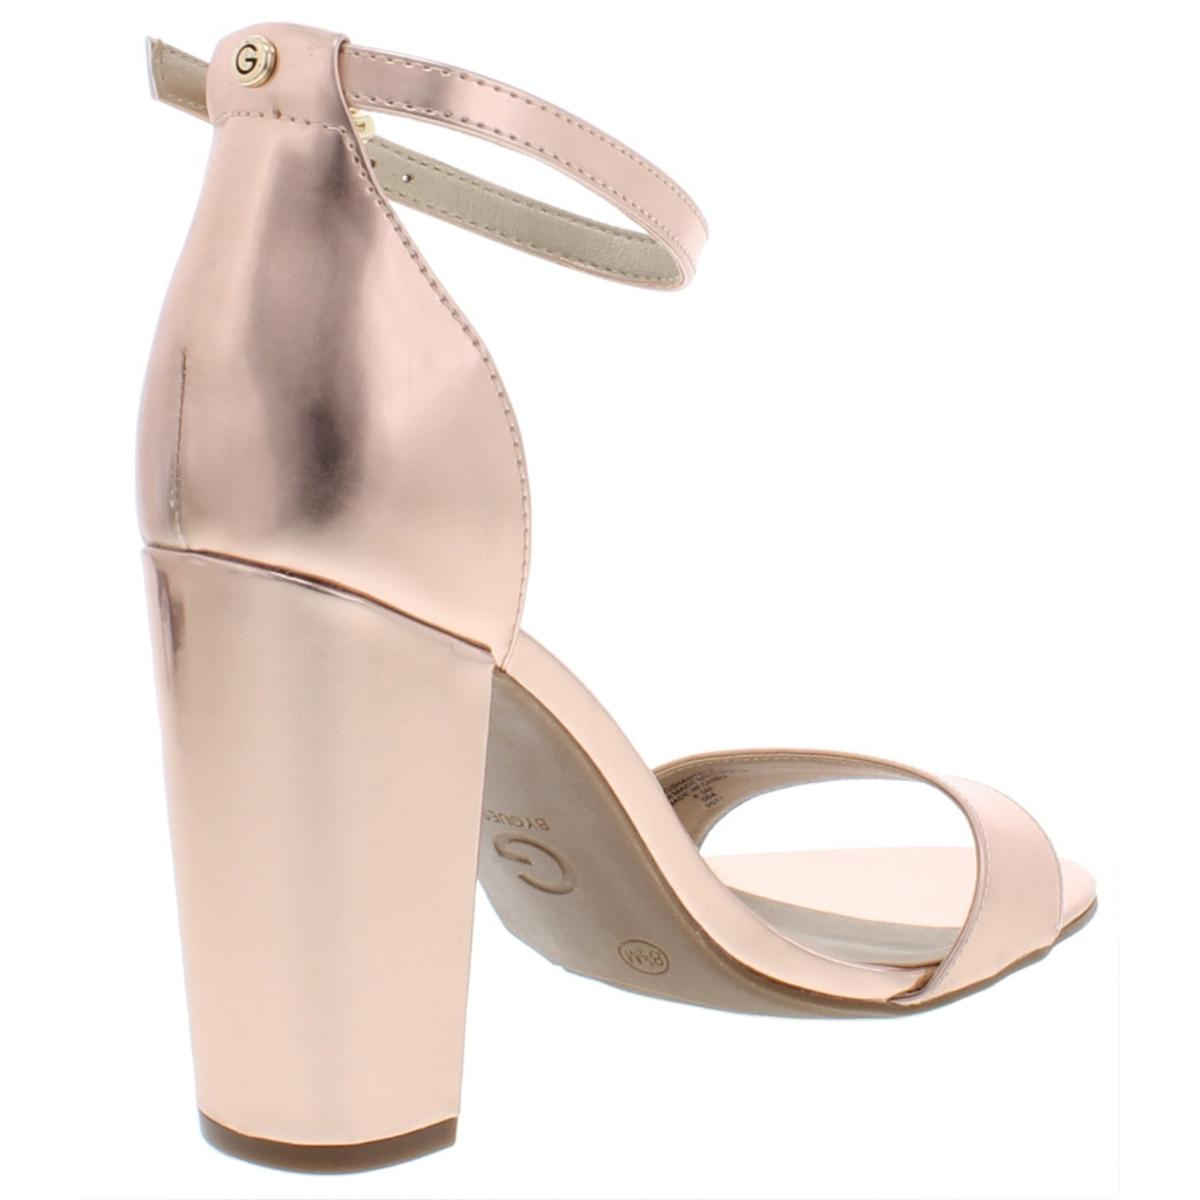 G-by-Guess-Womens-Shantel-3-Padded-Insole-Dress-Sandals-Shoes-BHFO-2561 thumbnail 10